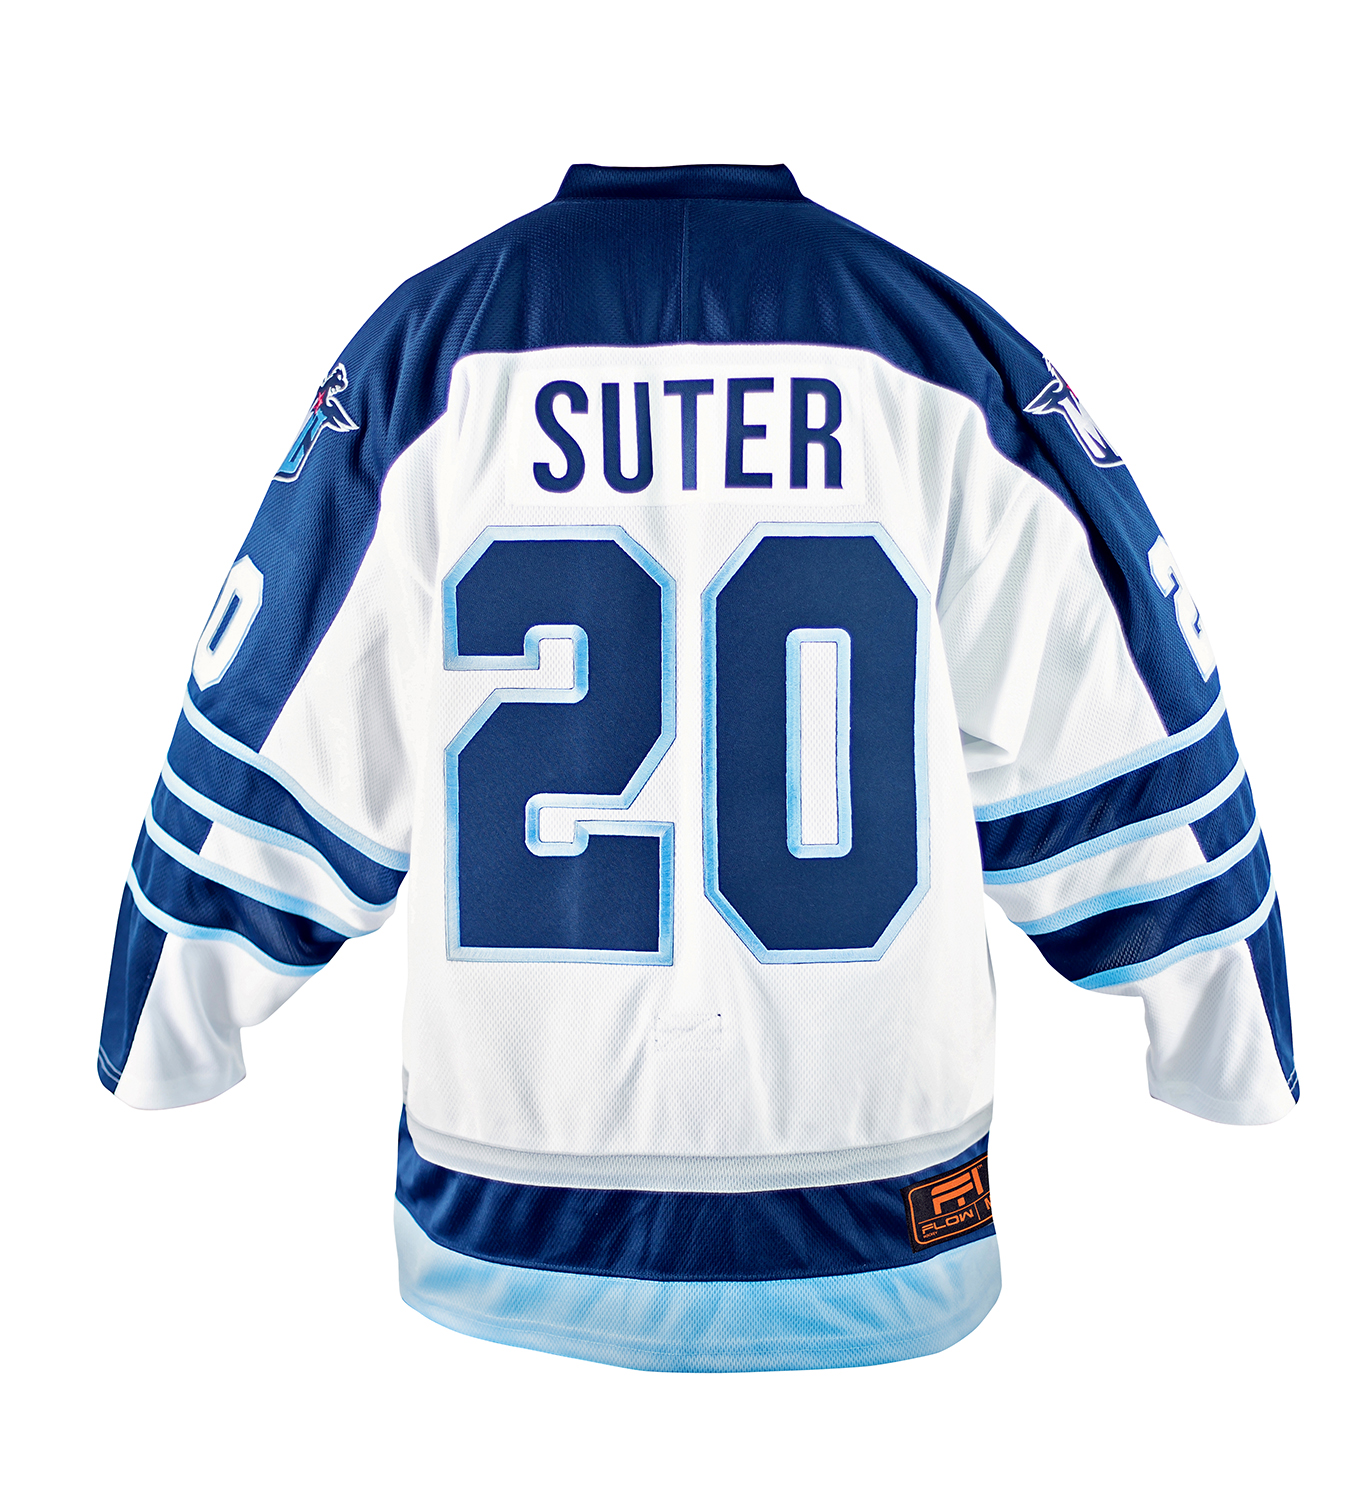 FH-CustomSuter_360_BackWEB.JPG